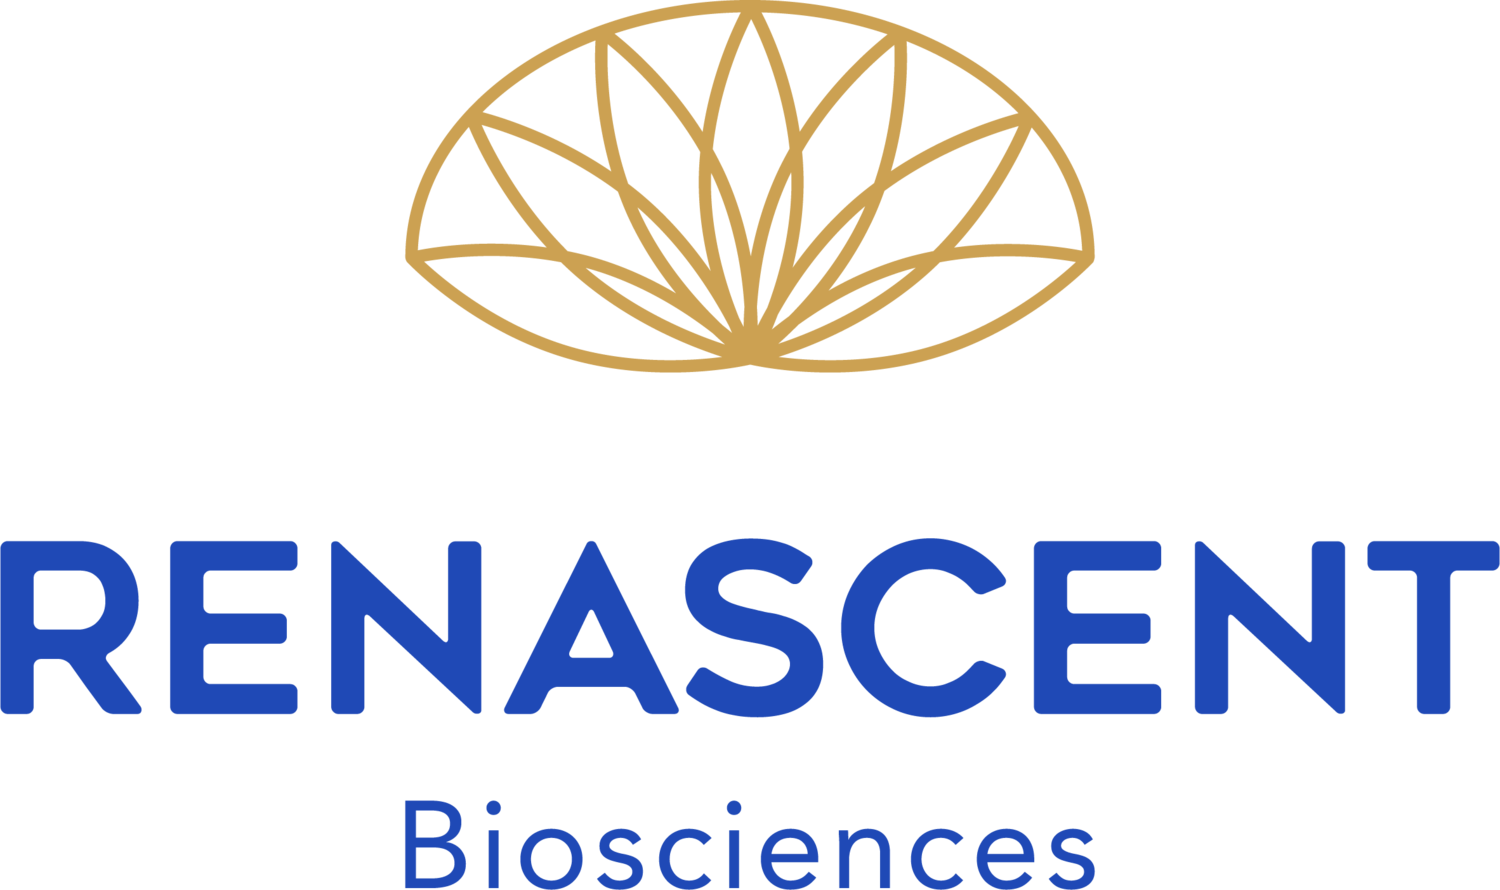 Renascent Biosciences